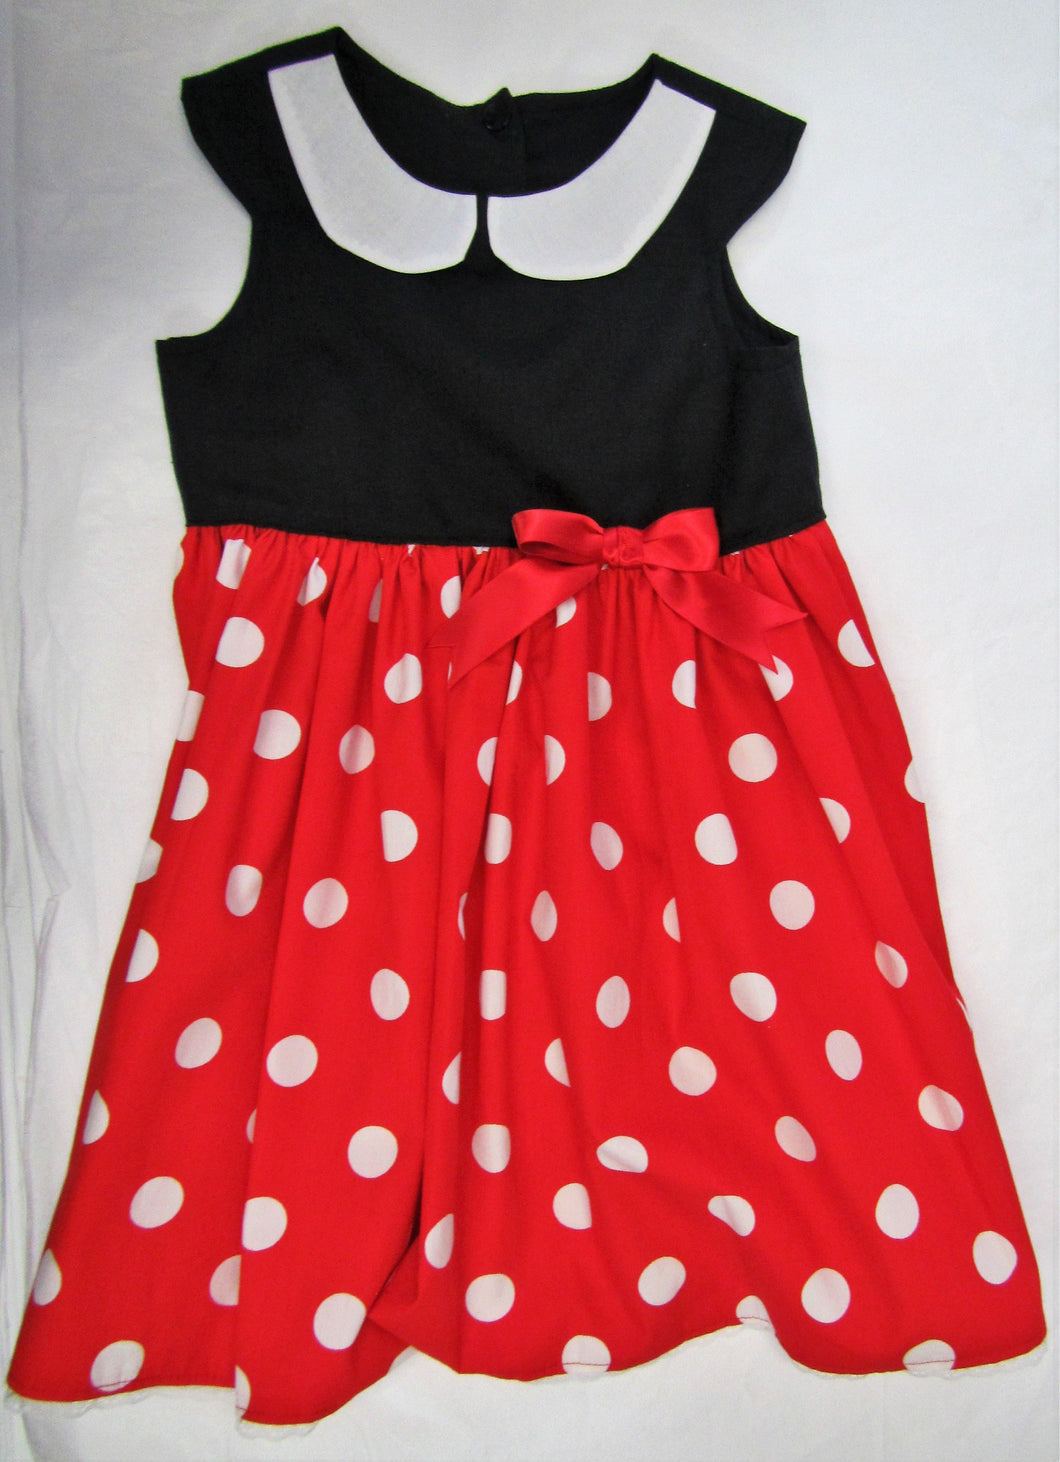 Handcrafted black and red spotted dress 2-3 years